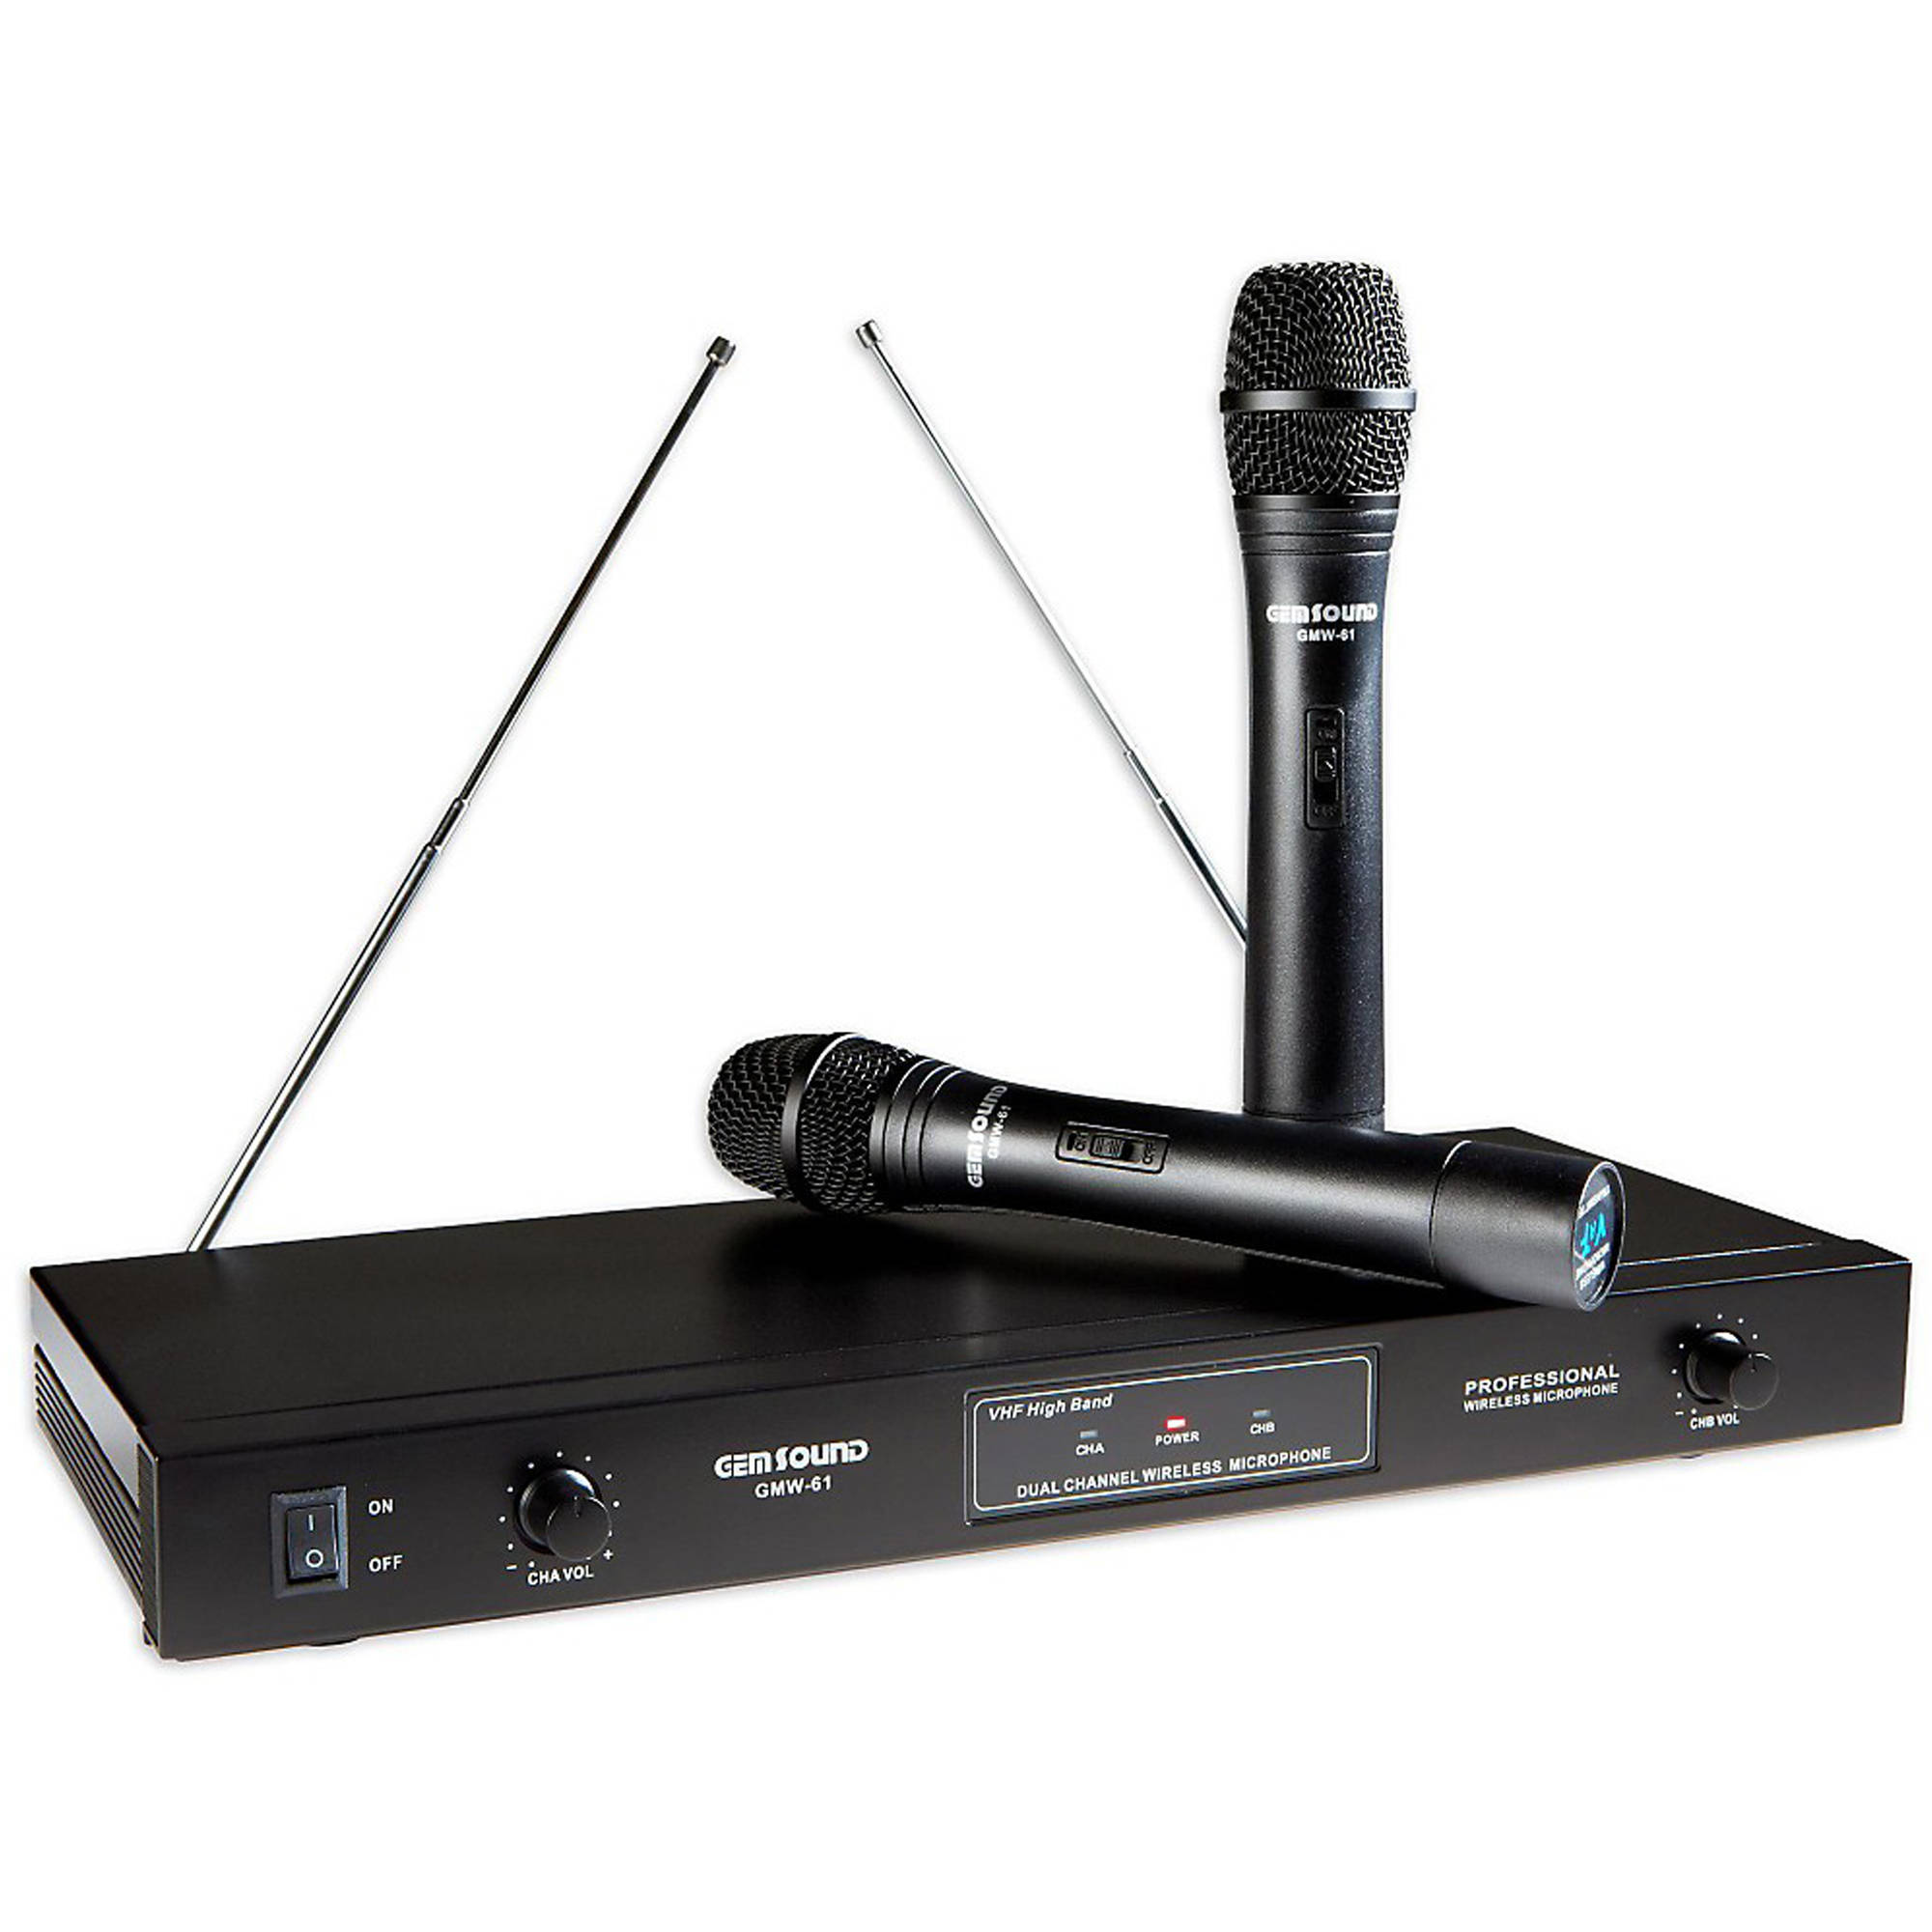 Gem Sound Dual Handheld FM Wireless Microphones, Channels G and H